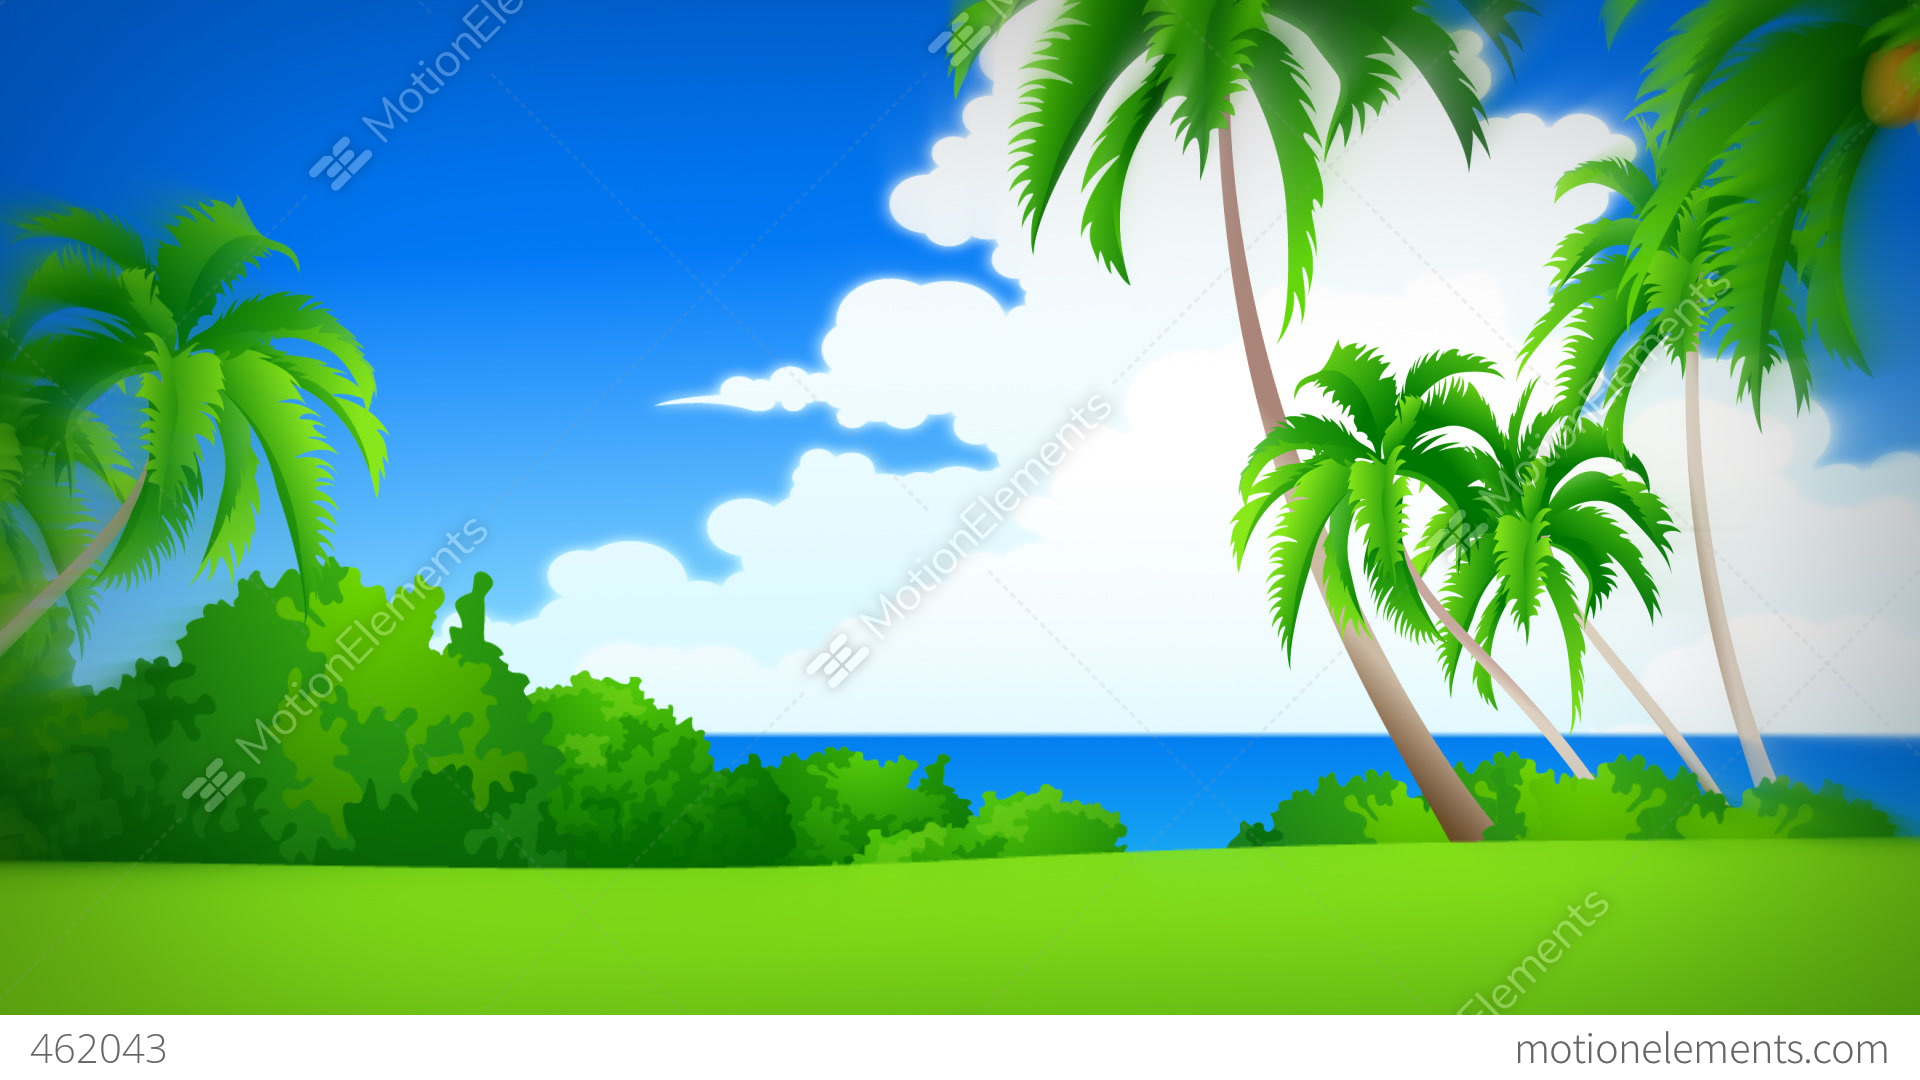 Animated Background For Television Presentations Stock ...